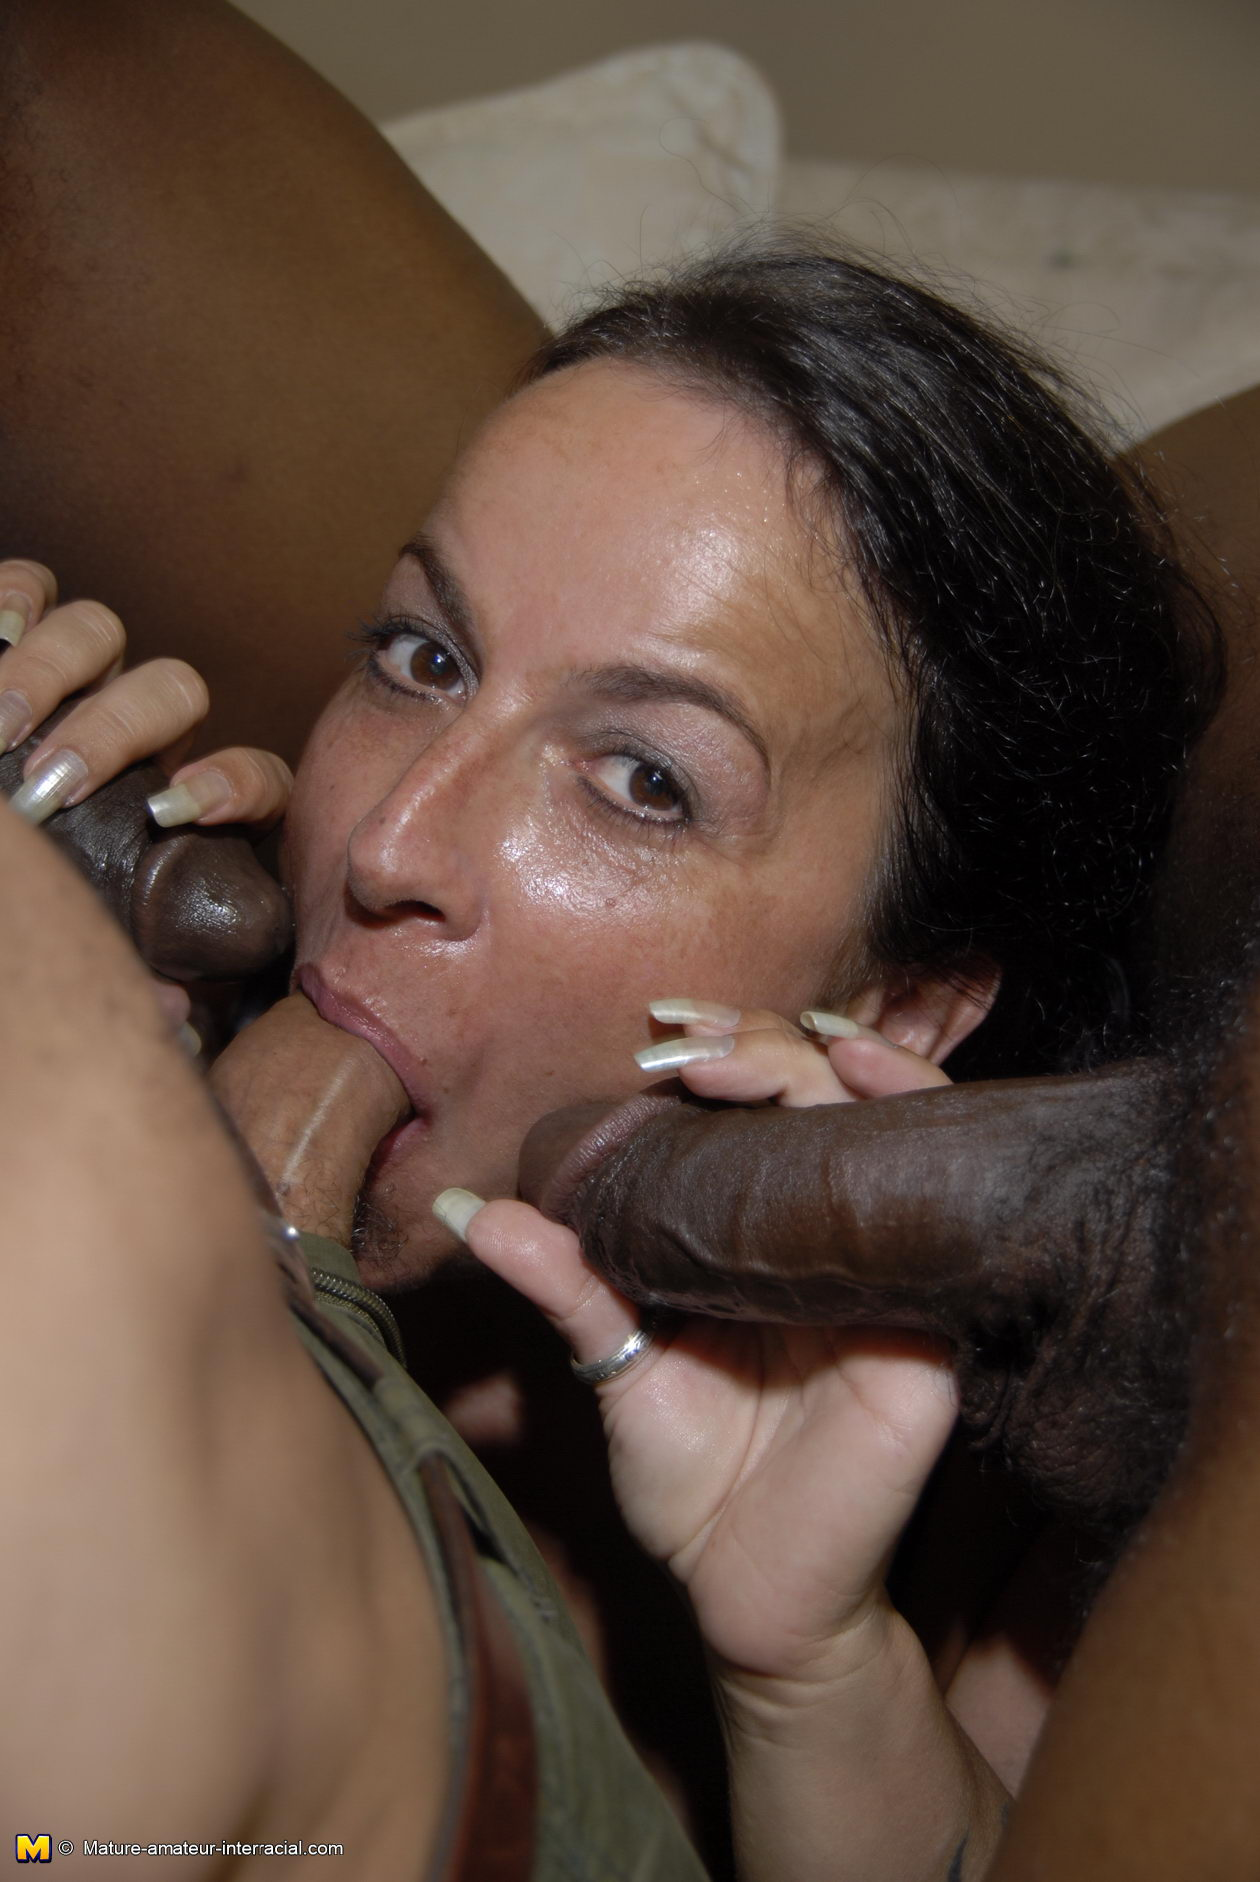 Recommend you wife loves taste of black cock